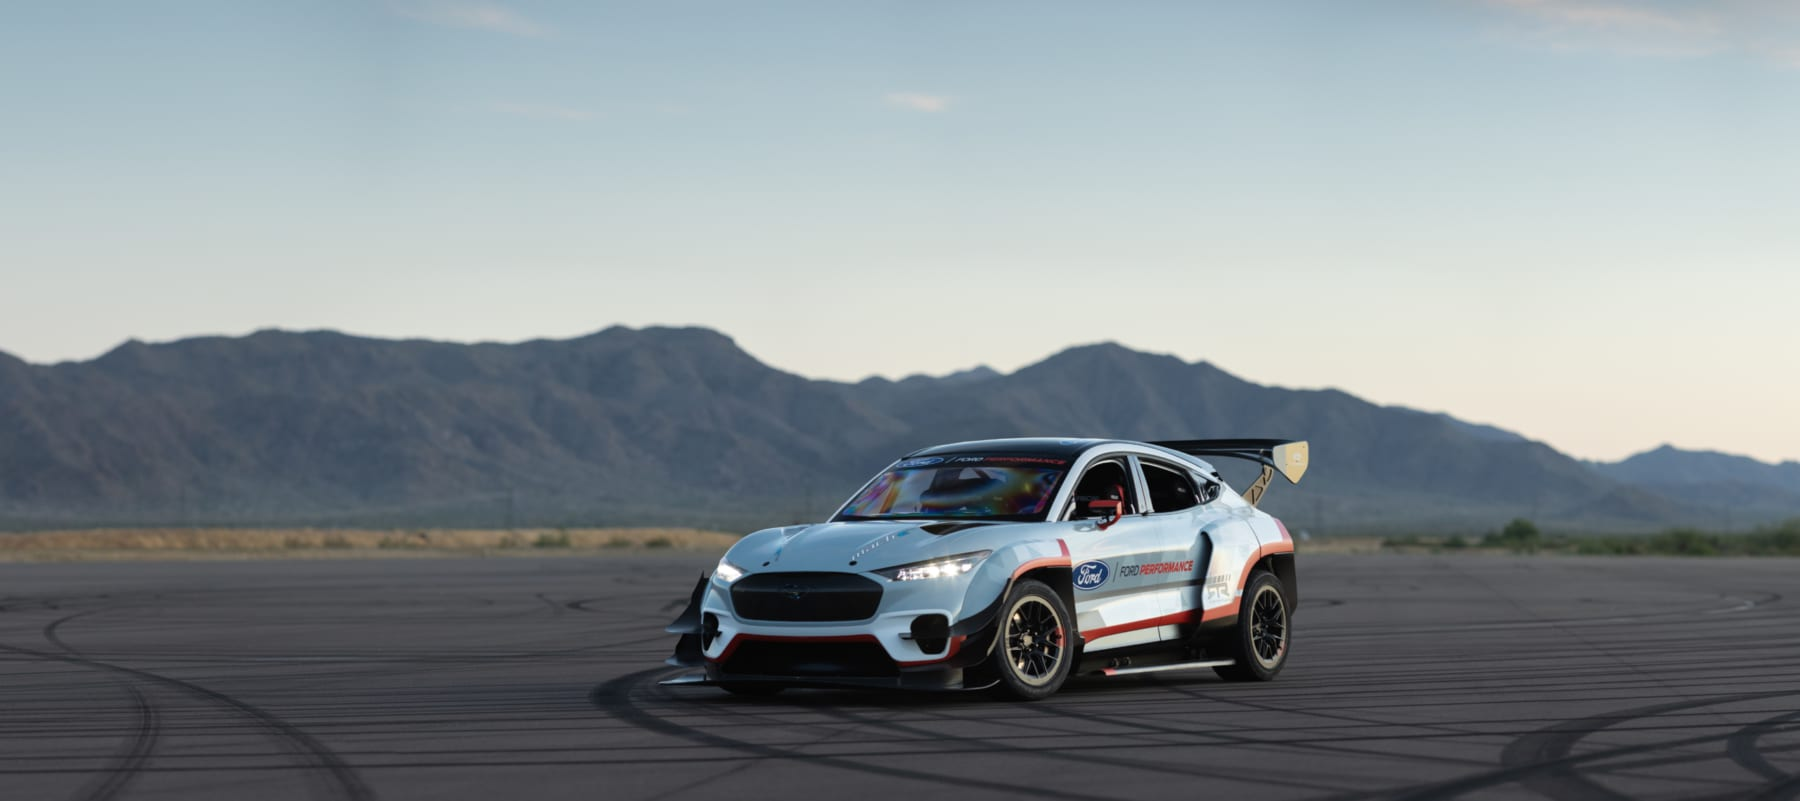 All-Electric Mustang Mach-E 1400 Prototype